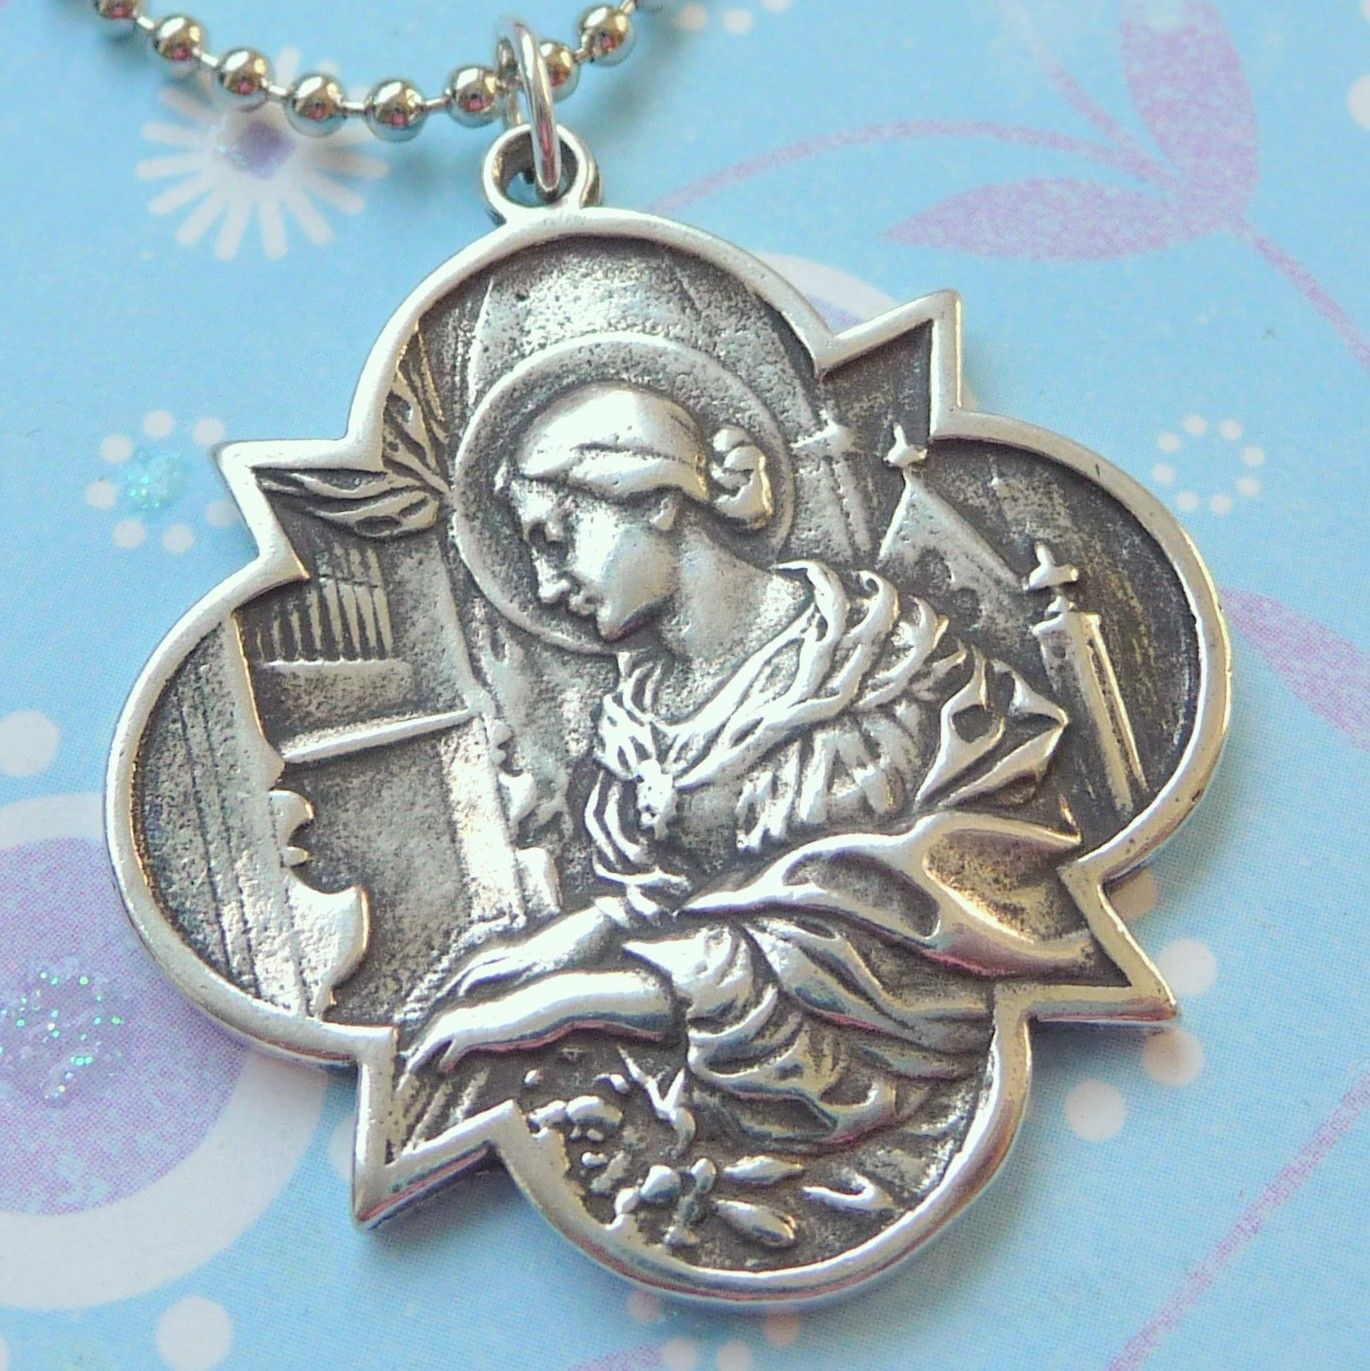 St cecilia medal st cecilia medal jewelry pinterest st cecilia medal st cecilia medal mozeypictures Choice Image